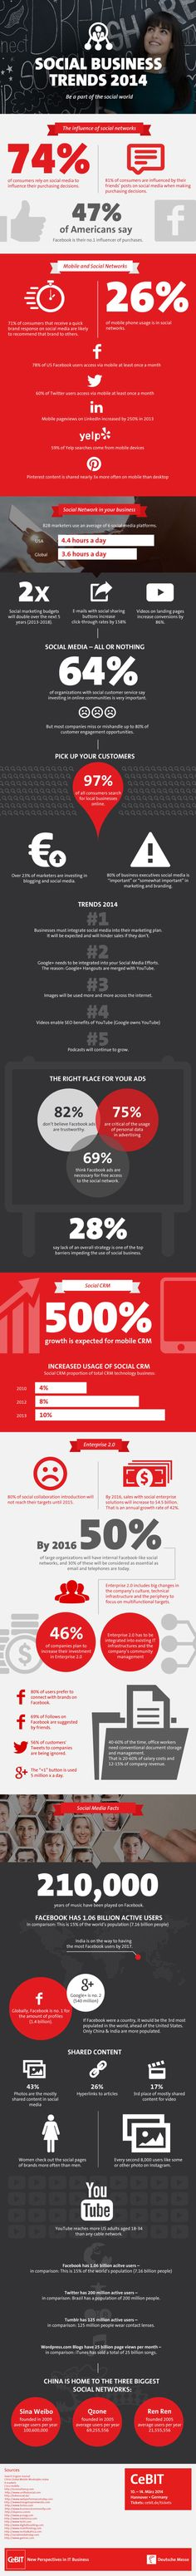 #Social #Business trends #2014 #Infographic #StoneSquared #STONE²